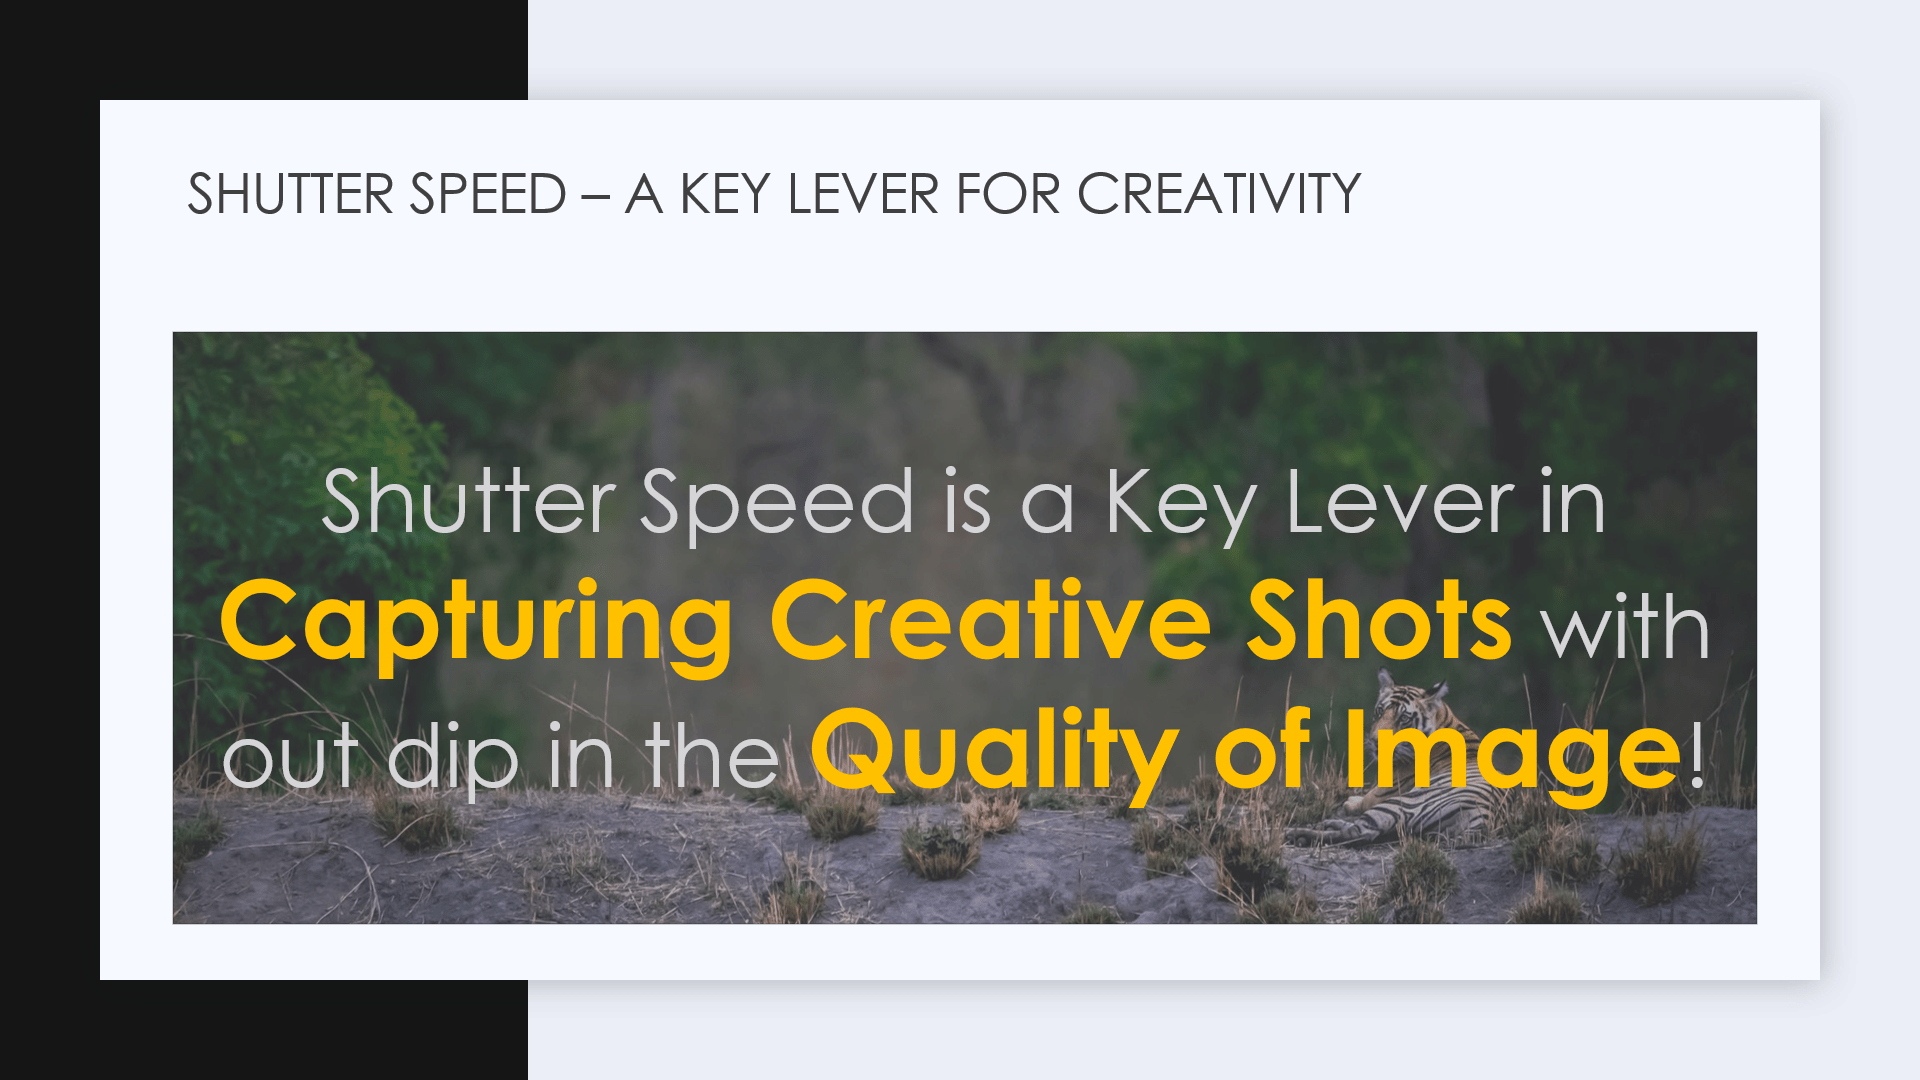 SHUTTER SPEED- A KEY LEVER FOR CREATIVITY